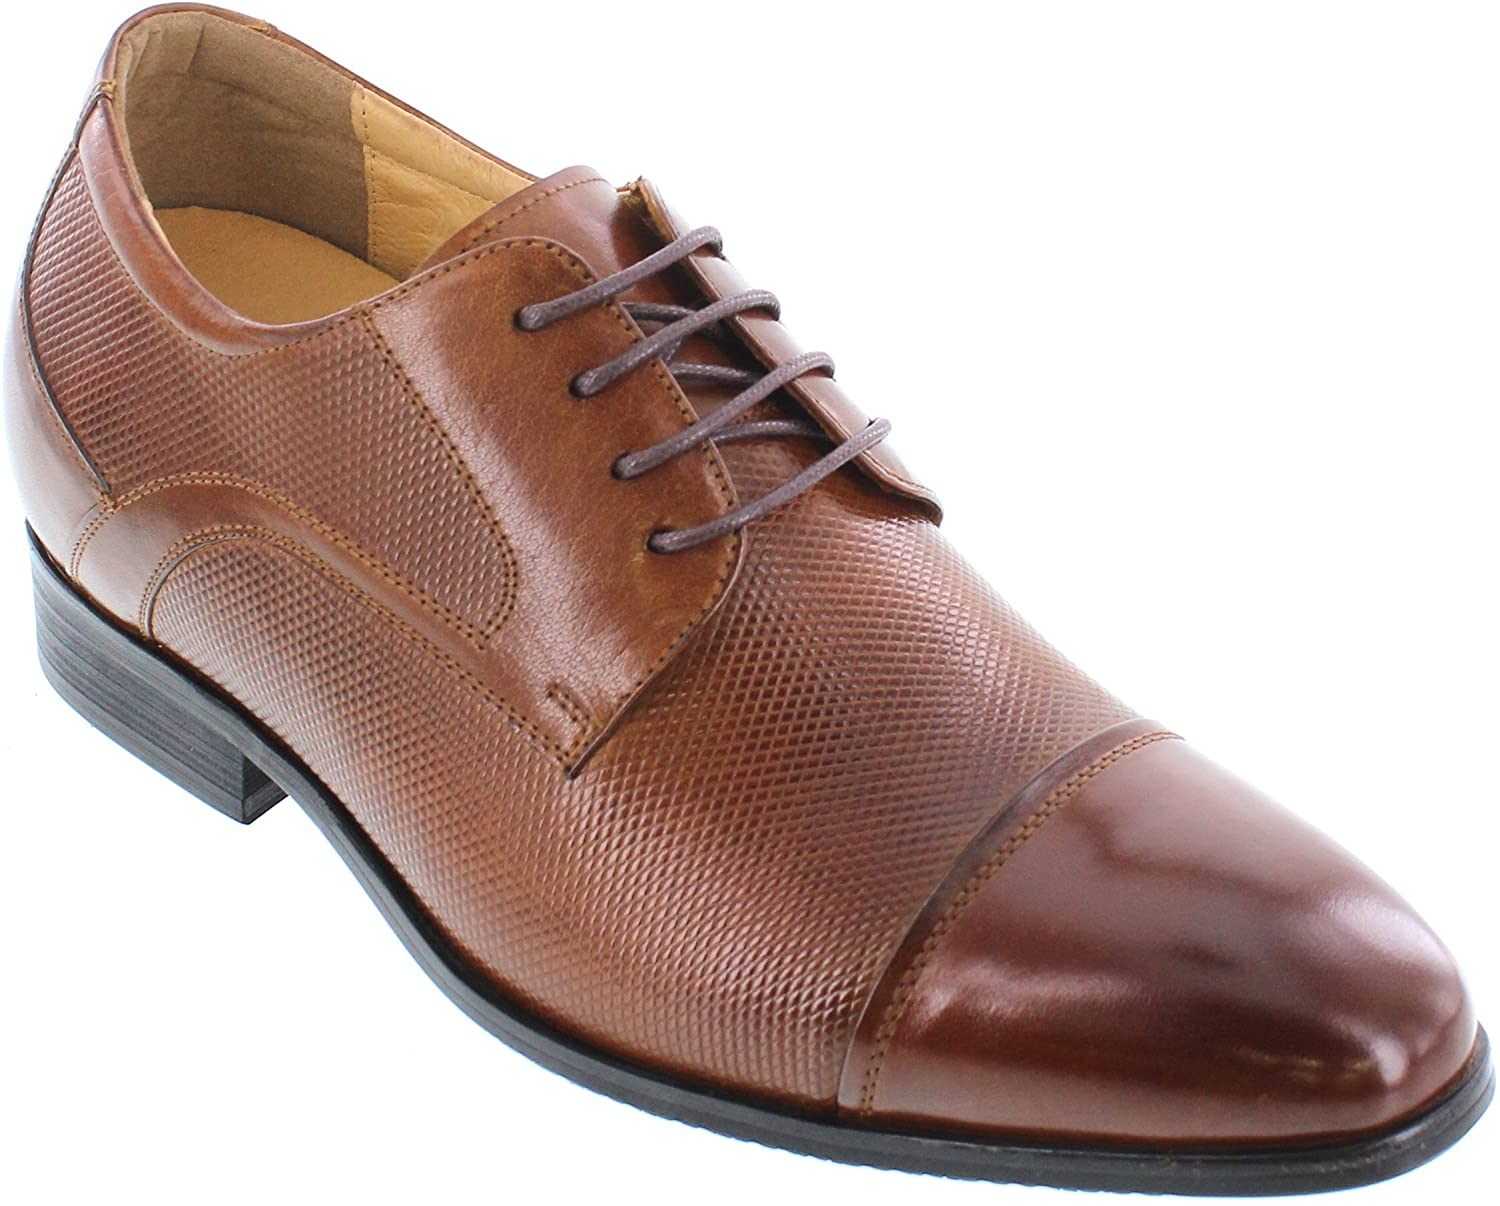 CALTO Men's Invisible Height Increasing Elevator Shoes - Brown Premium Leather Lace-up Formal Oxfords - 3 Inches Taller - Y40201